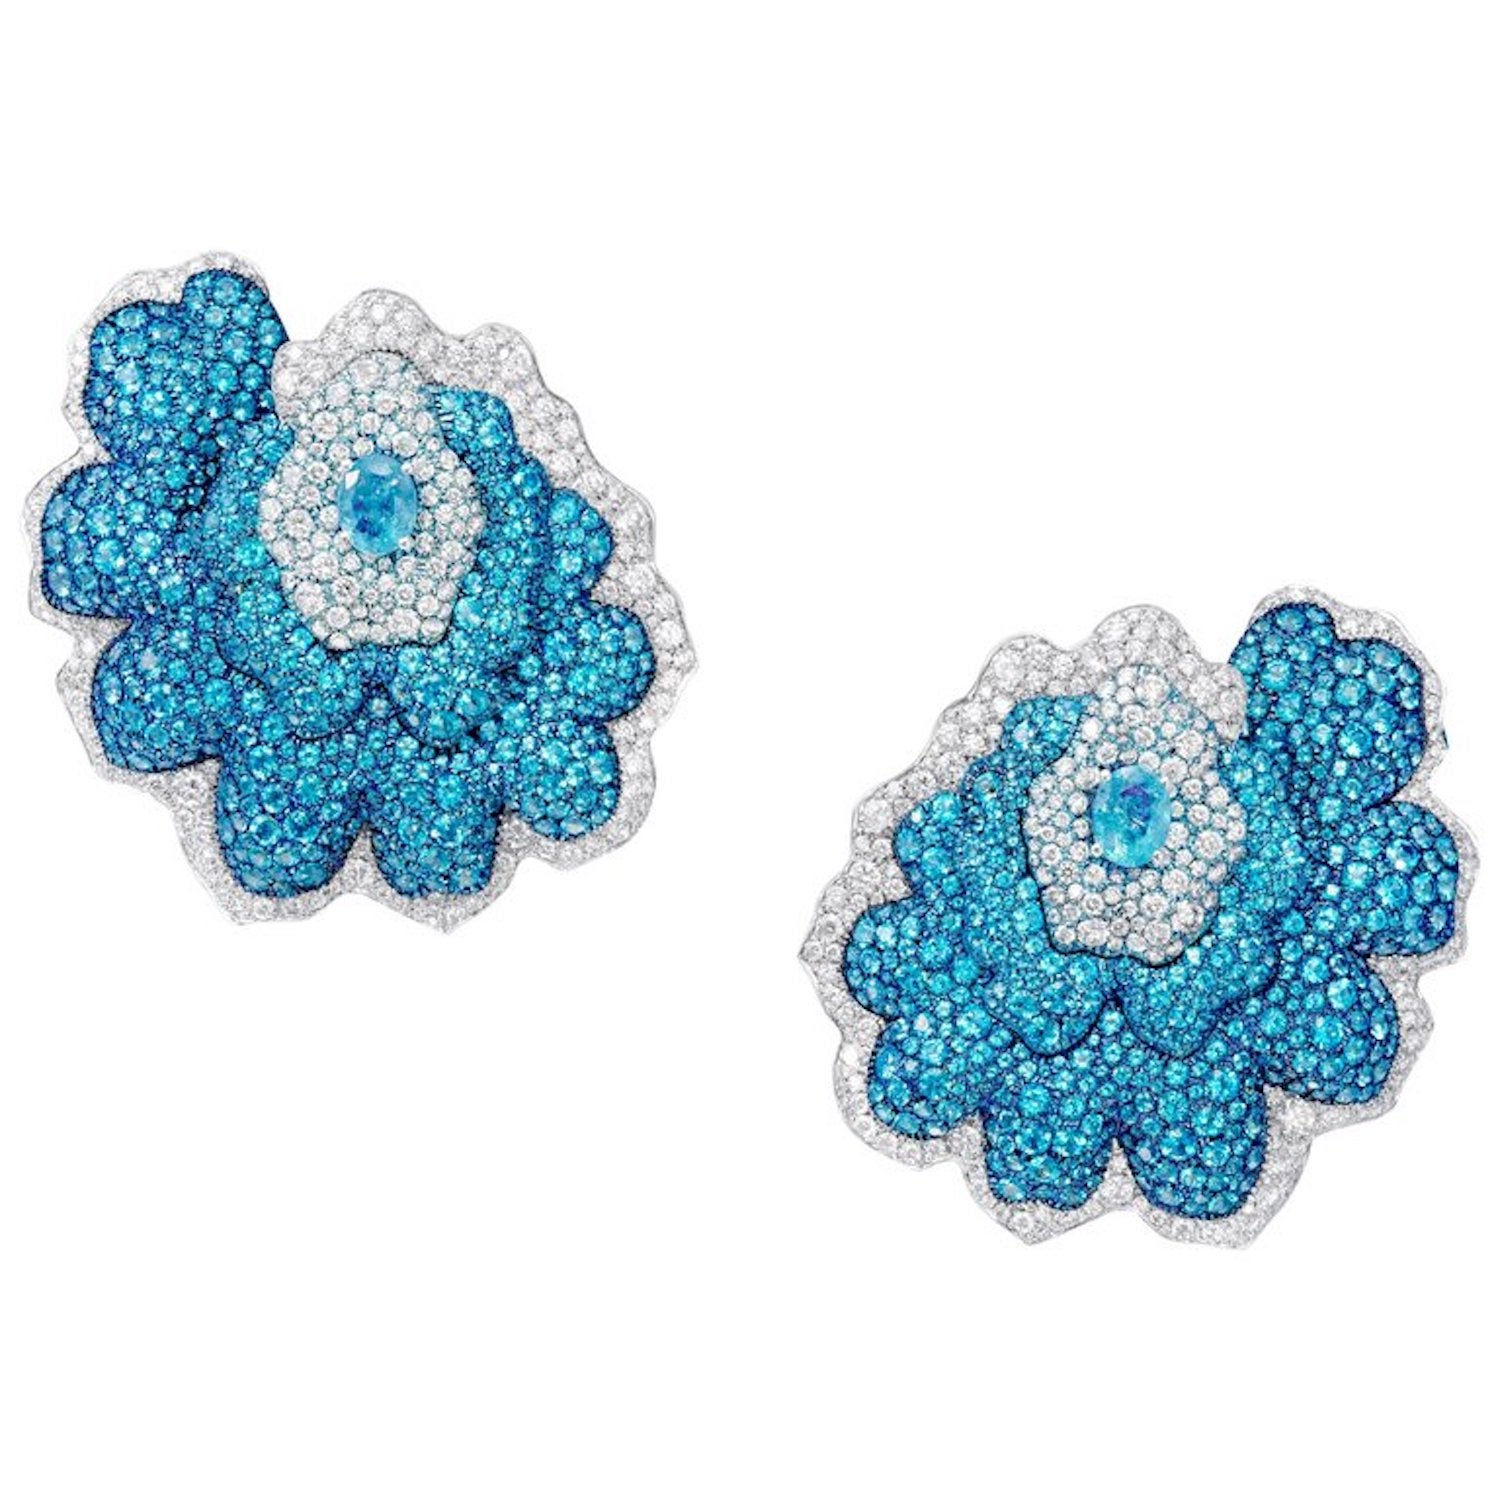 VanLeles Diamonds Earrings